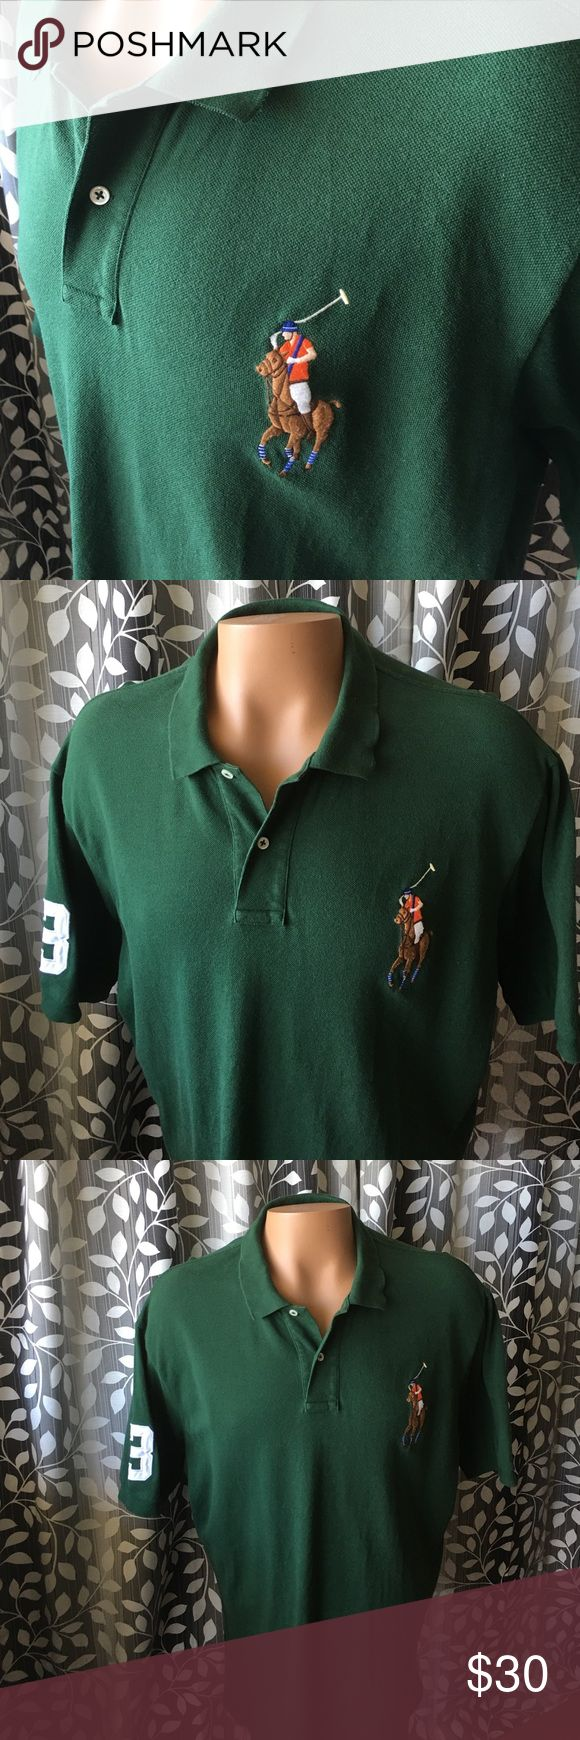 "Polo Ralph Lauren green polo shirt big pony #3 Very nice PRL polo shirt! Colorful big pony with #3 shoulder patch. Size XXL. Armpit to armpit- 26"" shoulder to shoulder- 22"" neck to bottom- 32"". Thanks! Polo by Ralph Lauren Shirts Polos"